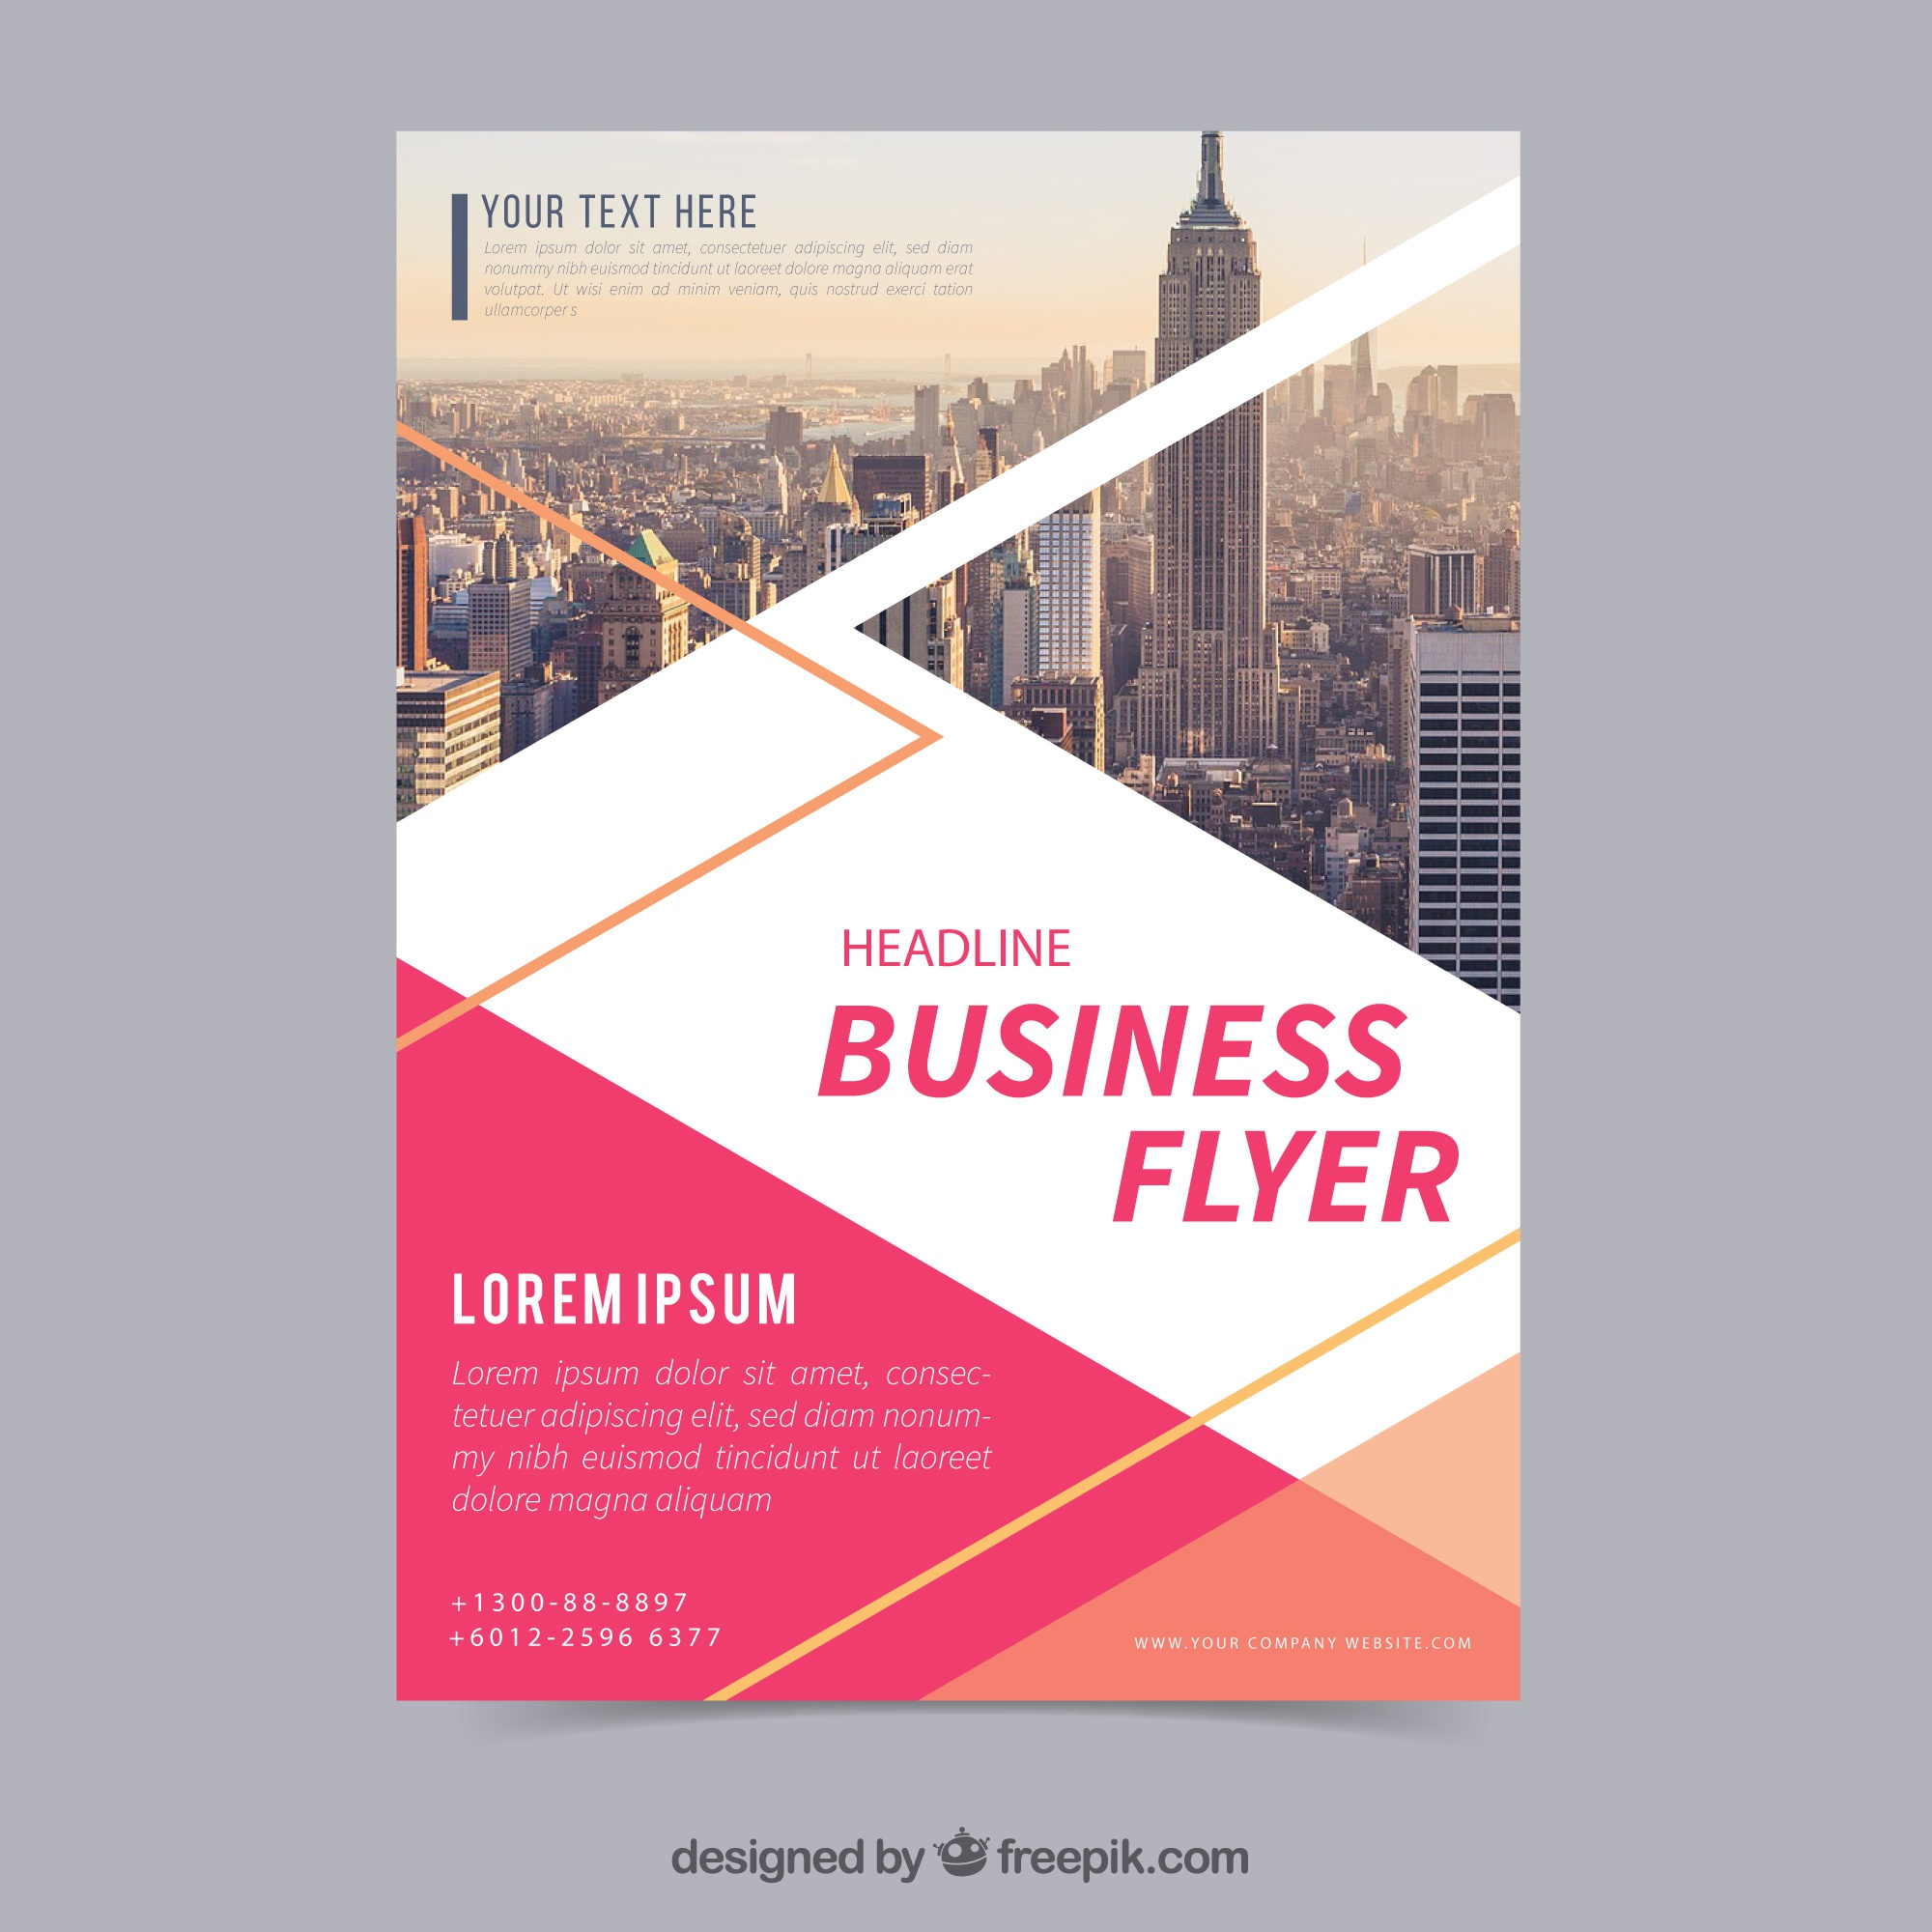 Flat business flyer